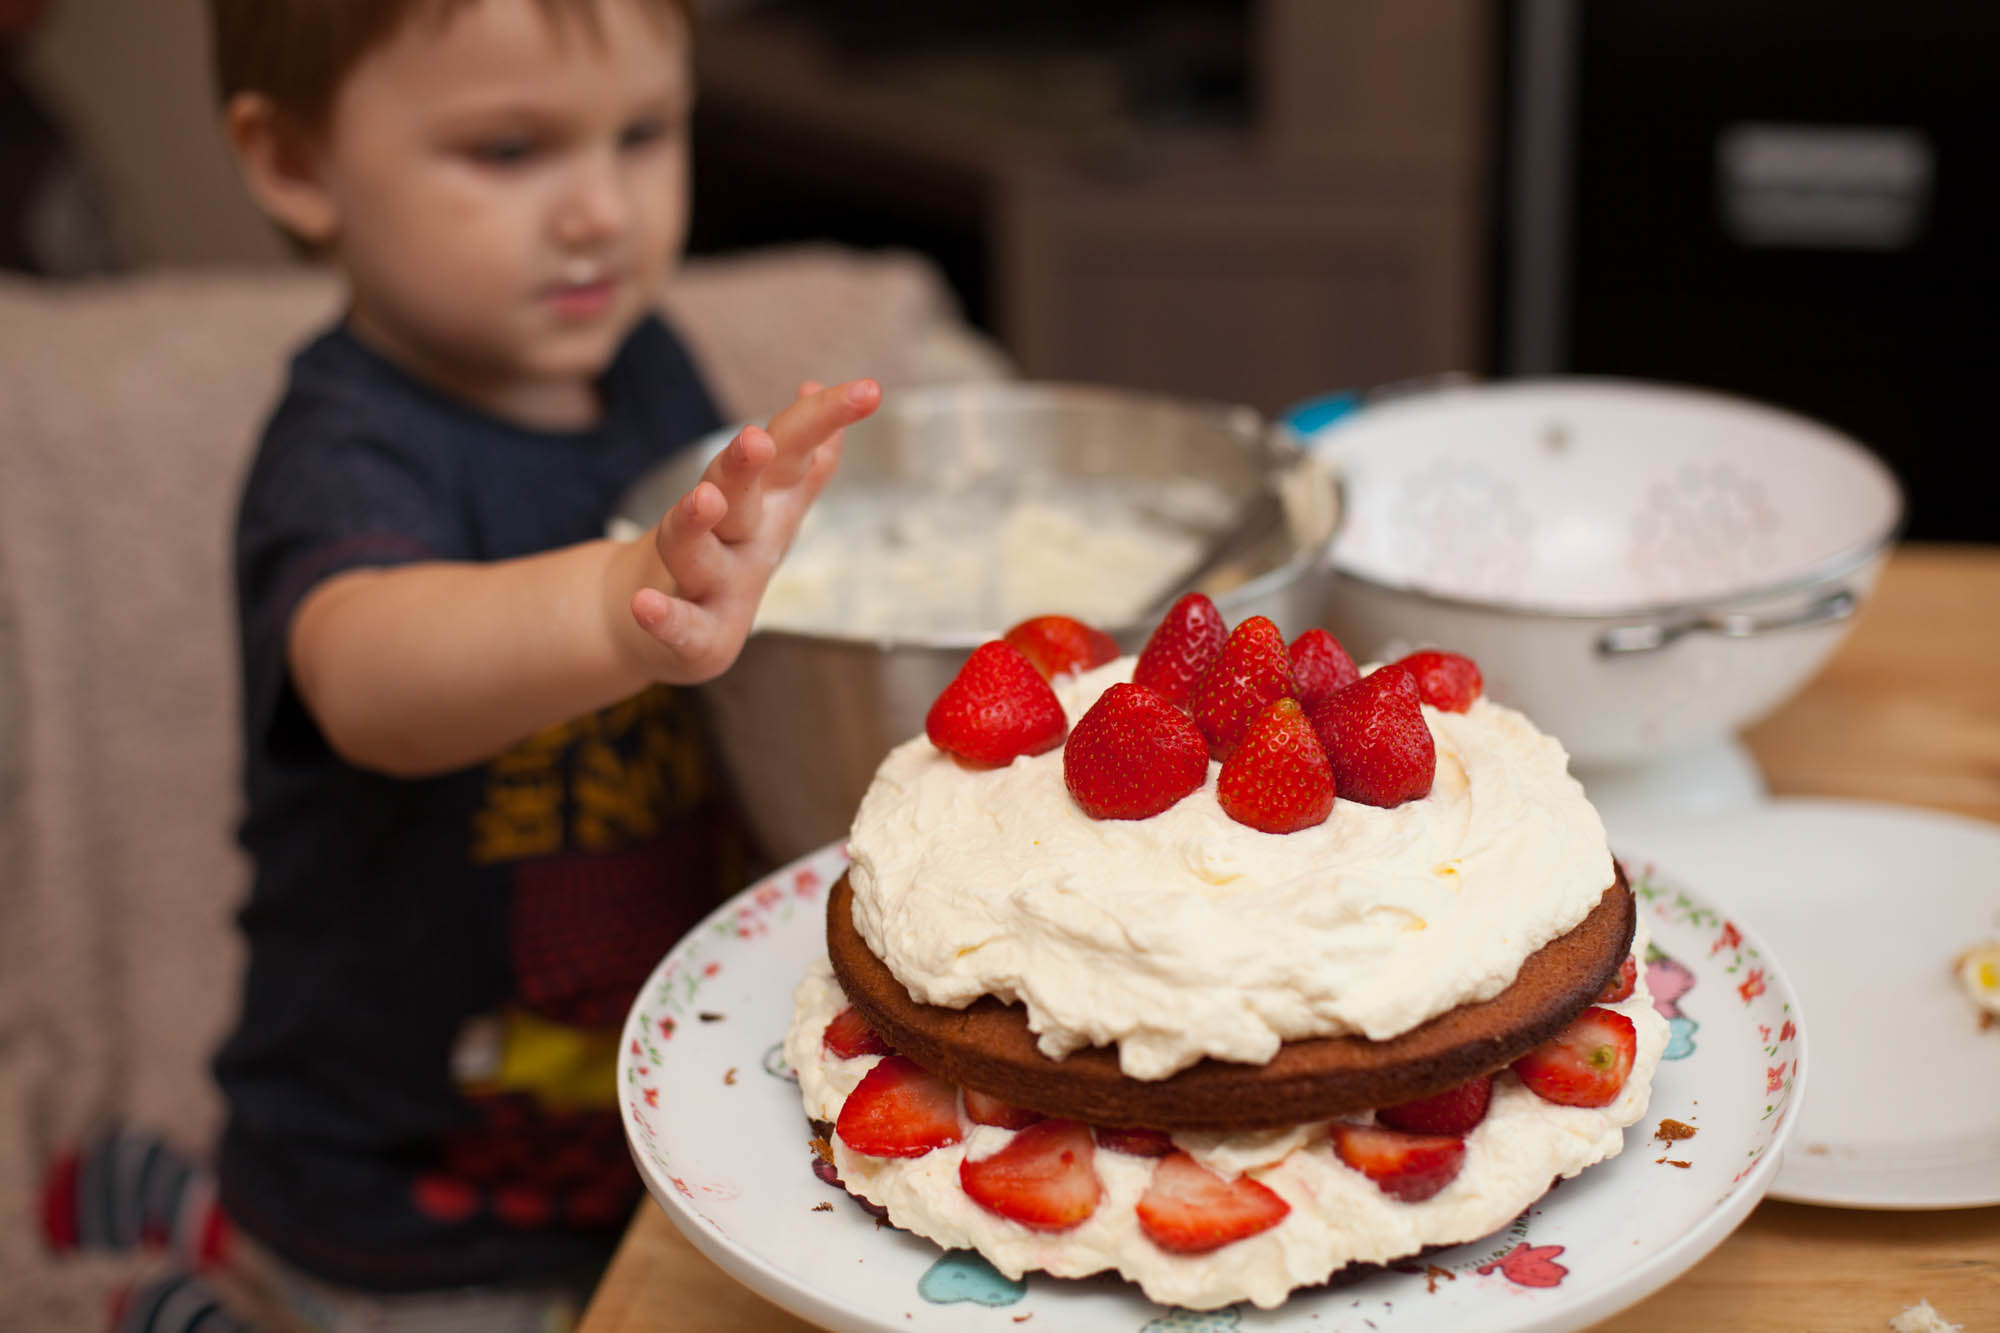 strawberry-cake-ann-wo-ben-27